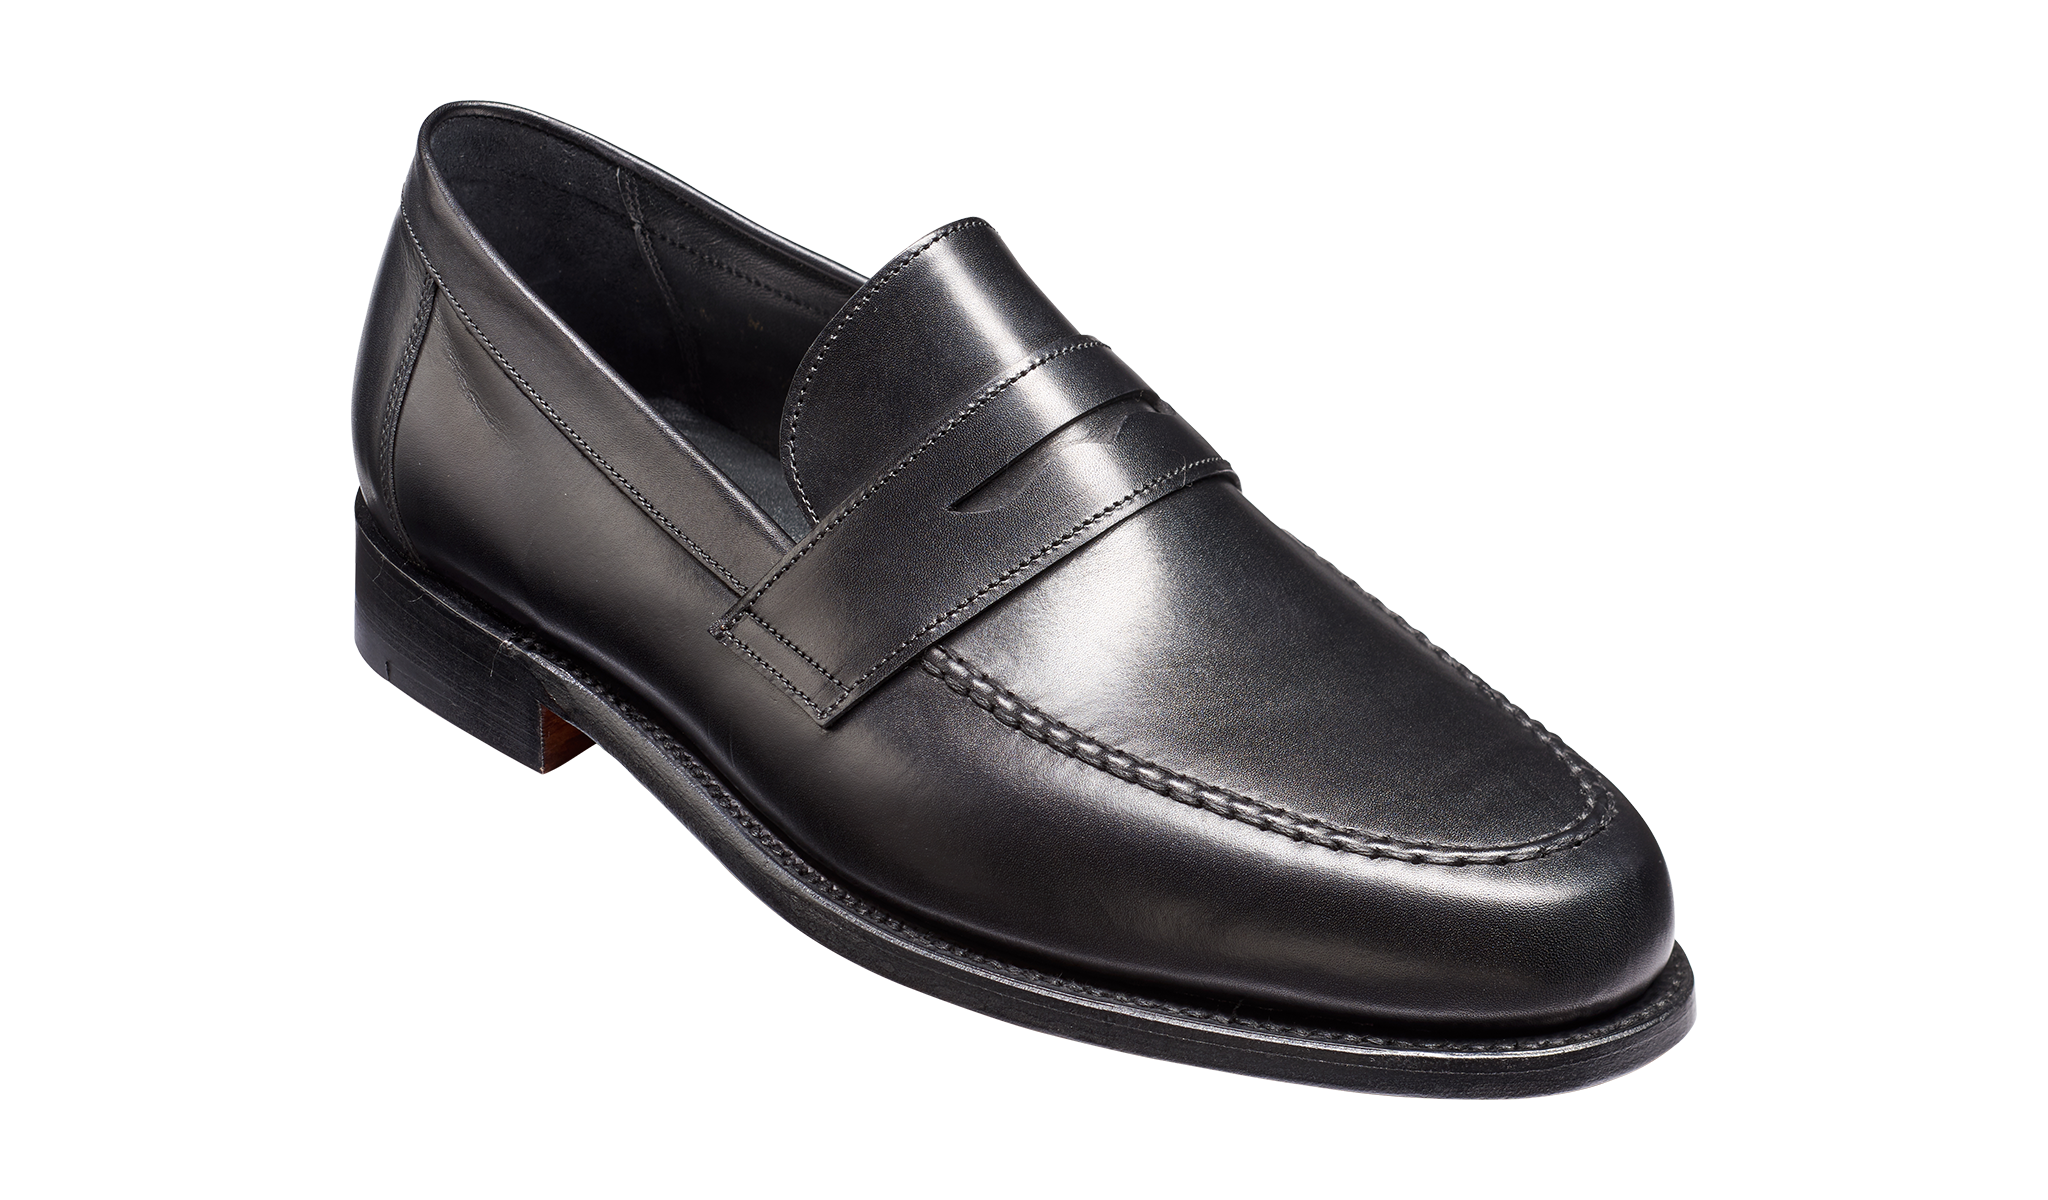 Jevington - A men black loafer by Barker Shoes.